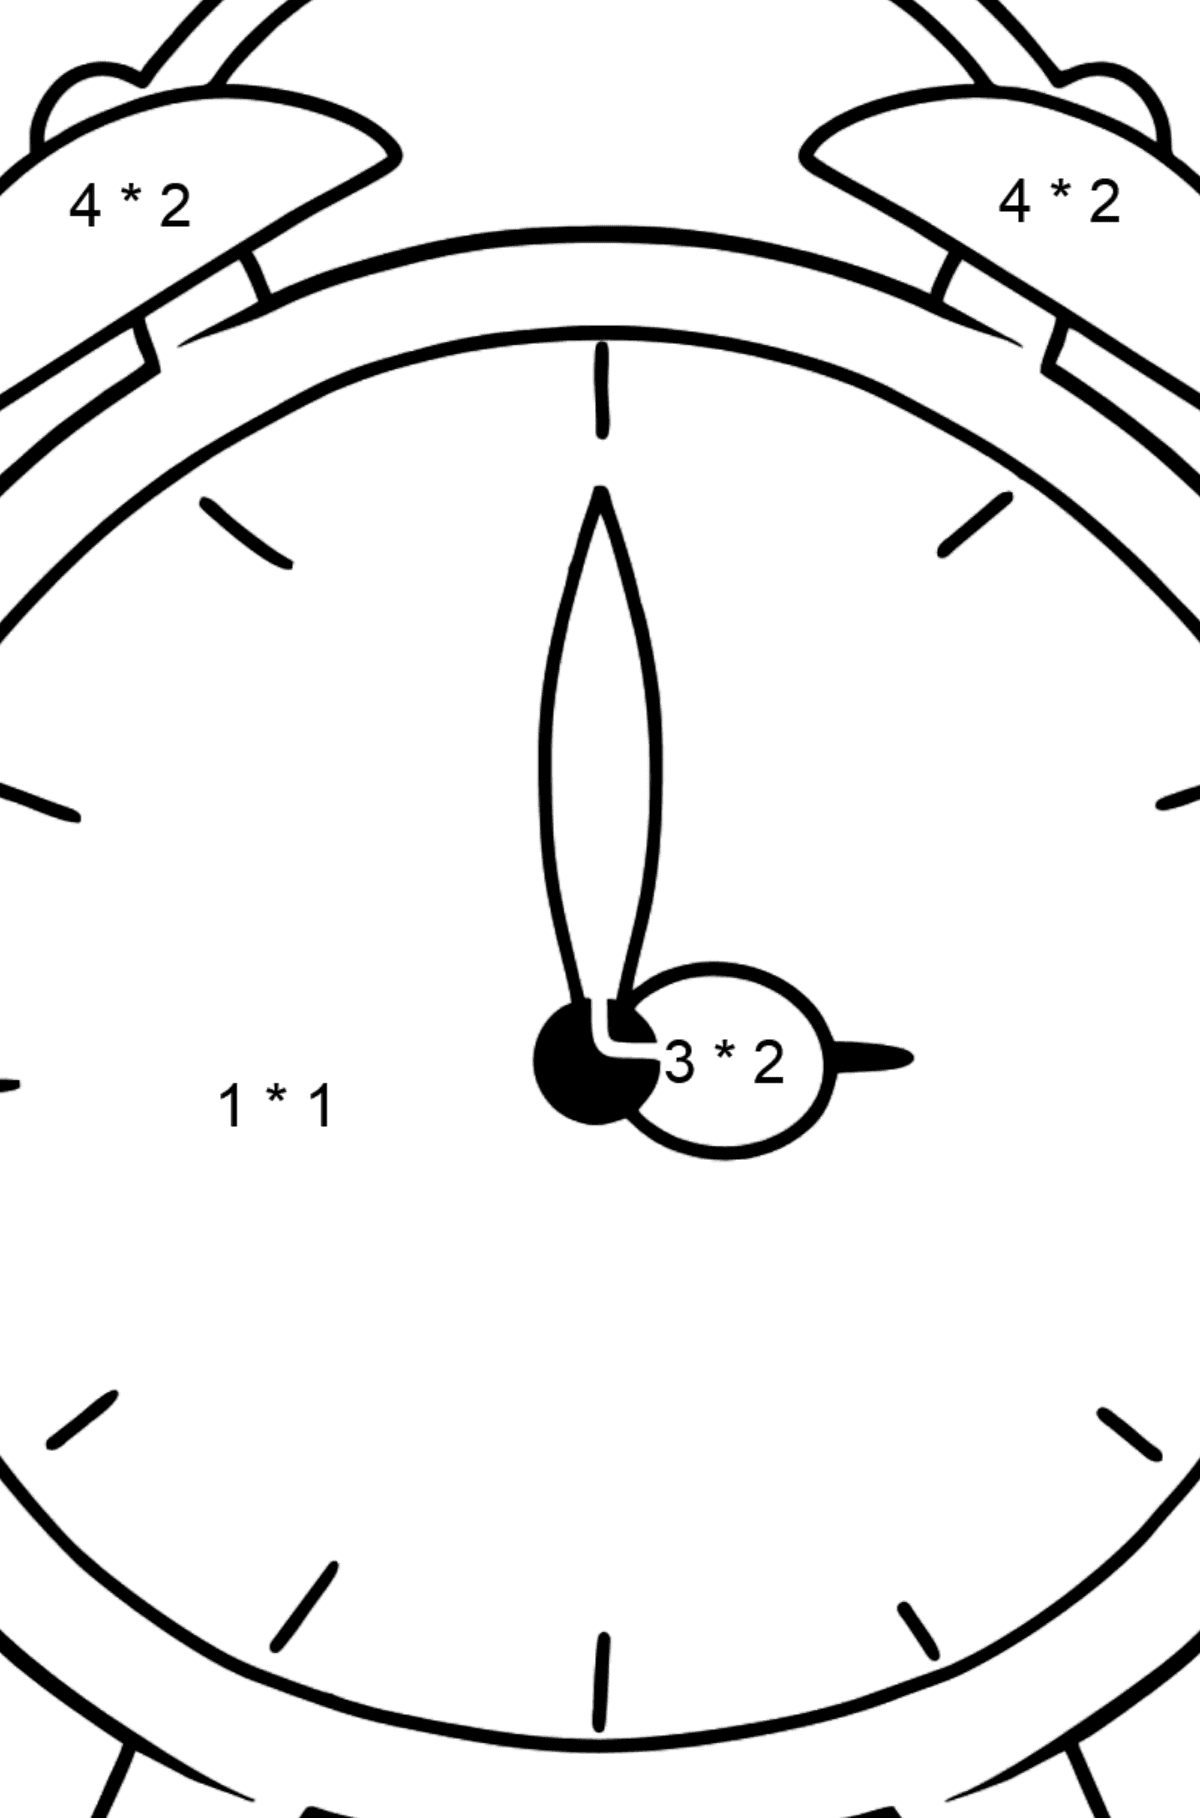 Alarm Clock coloring page - Math Coloring - Multiplication for Kids